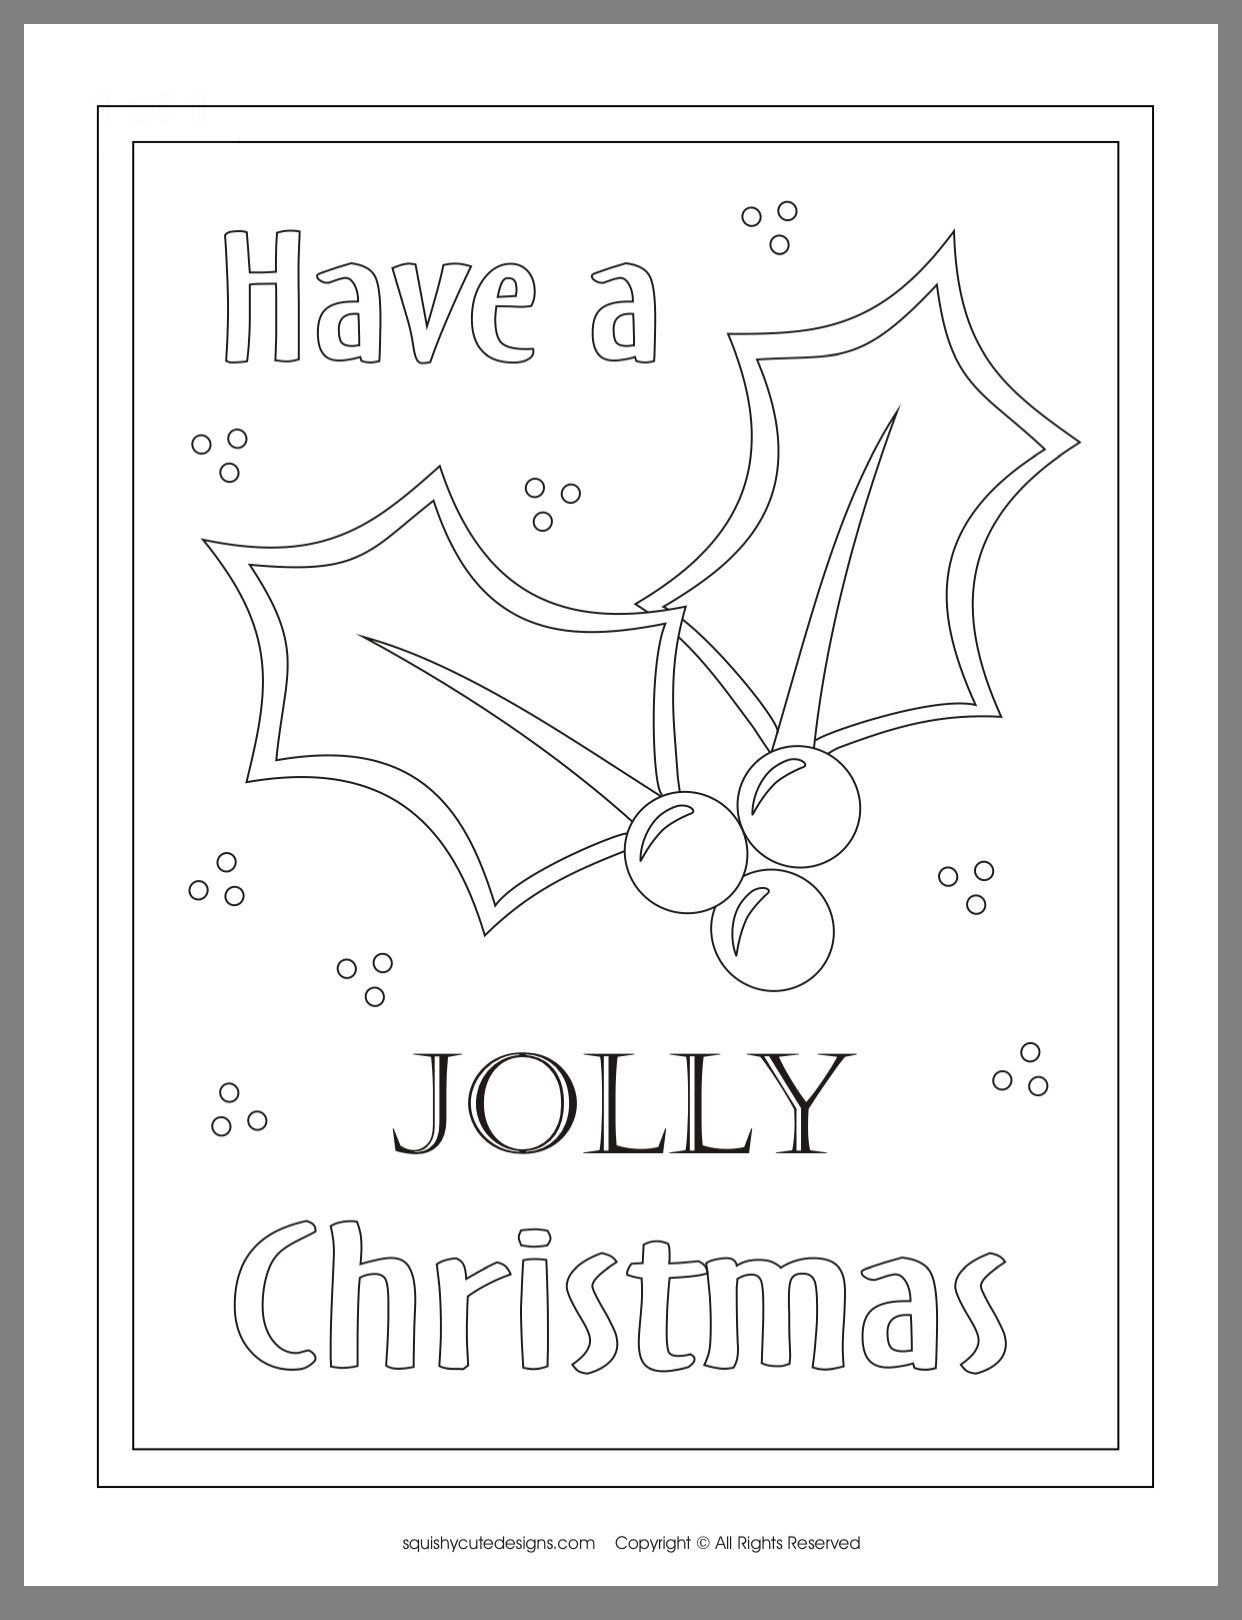 Pin By Crystal Durham On Coloring Pages Coloring Pages Diy Cards Cards